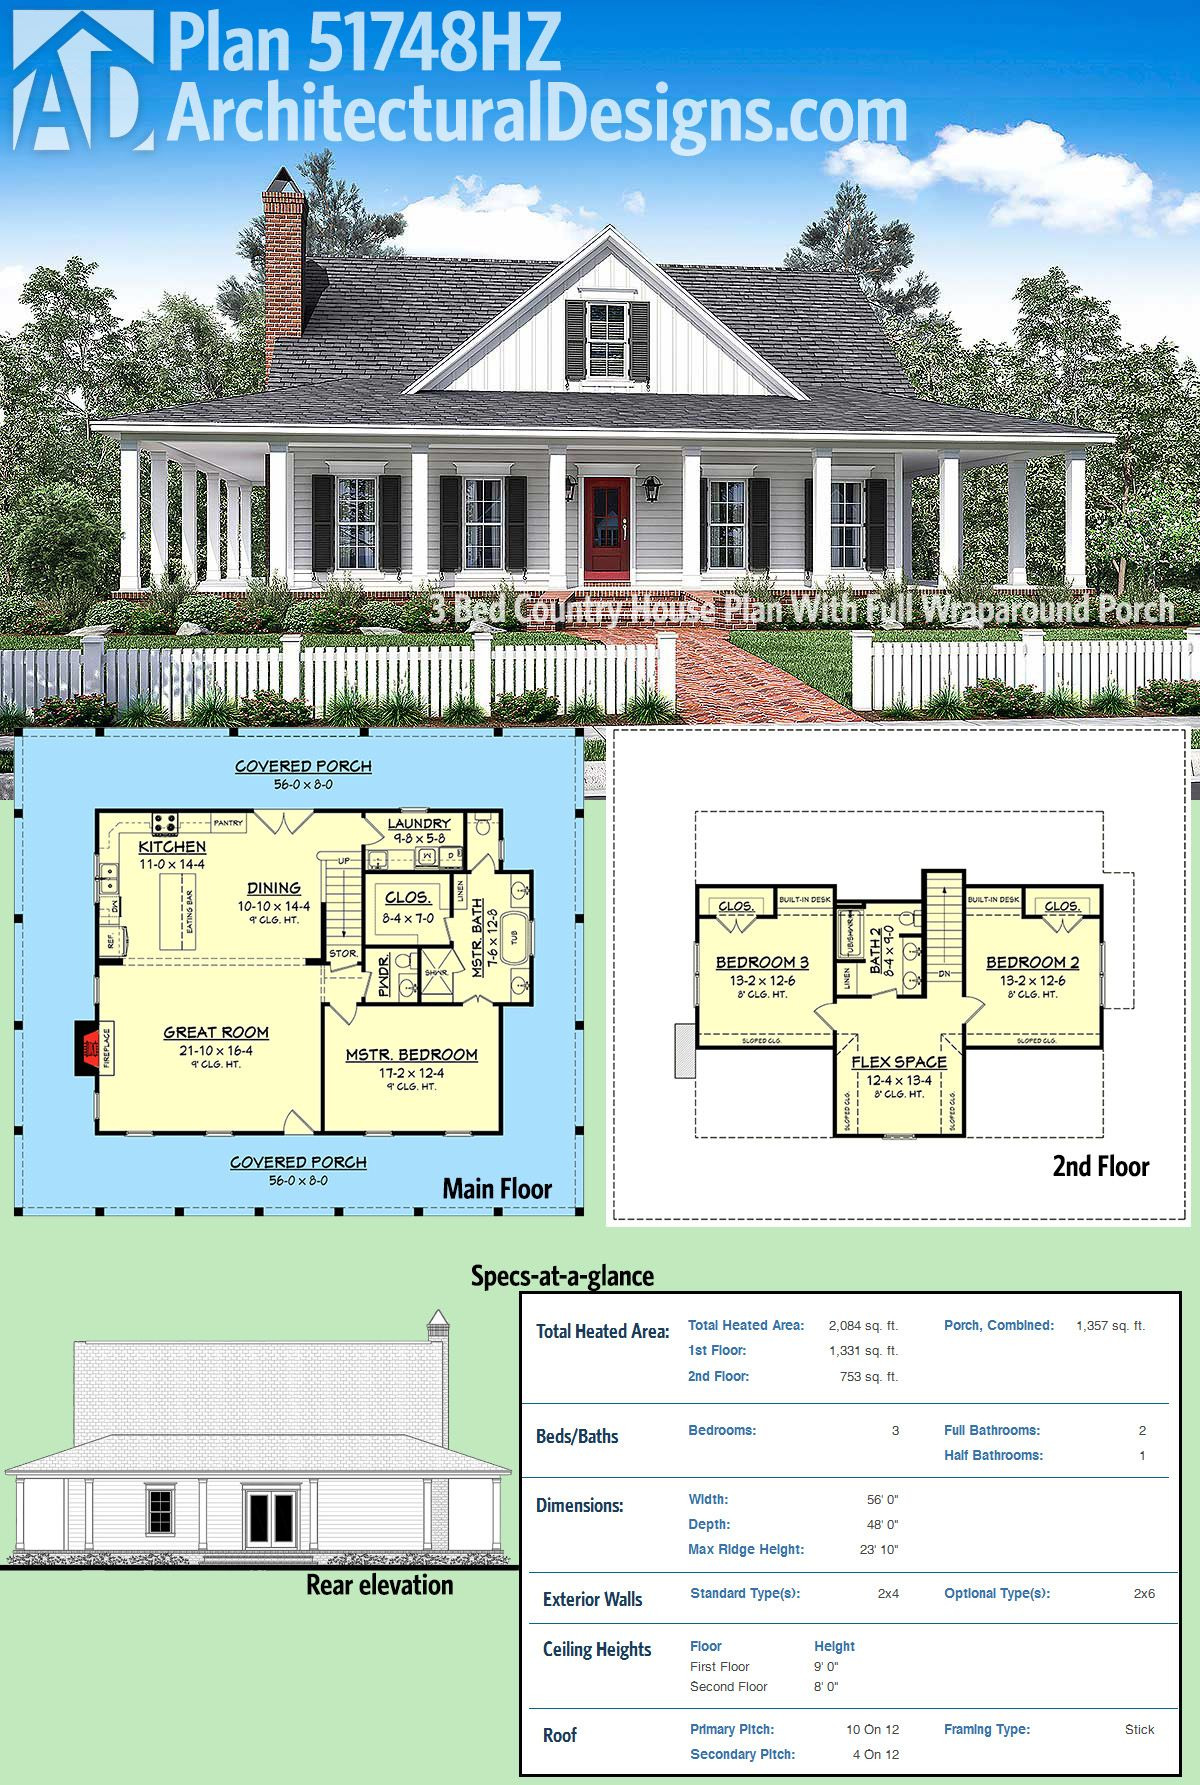 Country House Plans with Porches Best Of Plan Hz 3 Bed Country House Plan with Full Wraparound